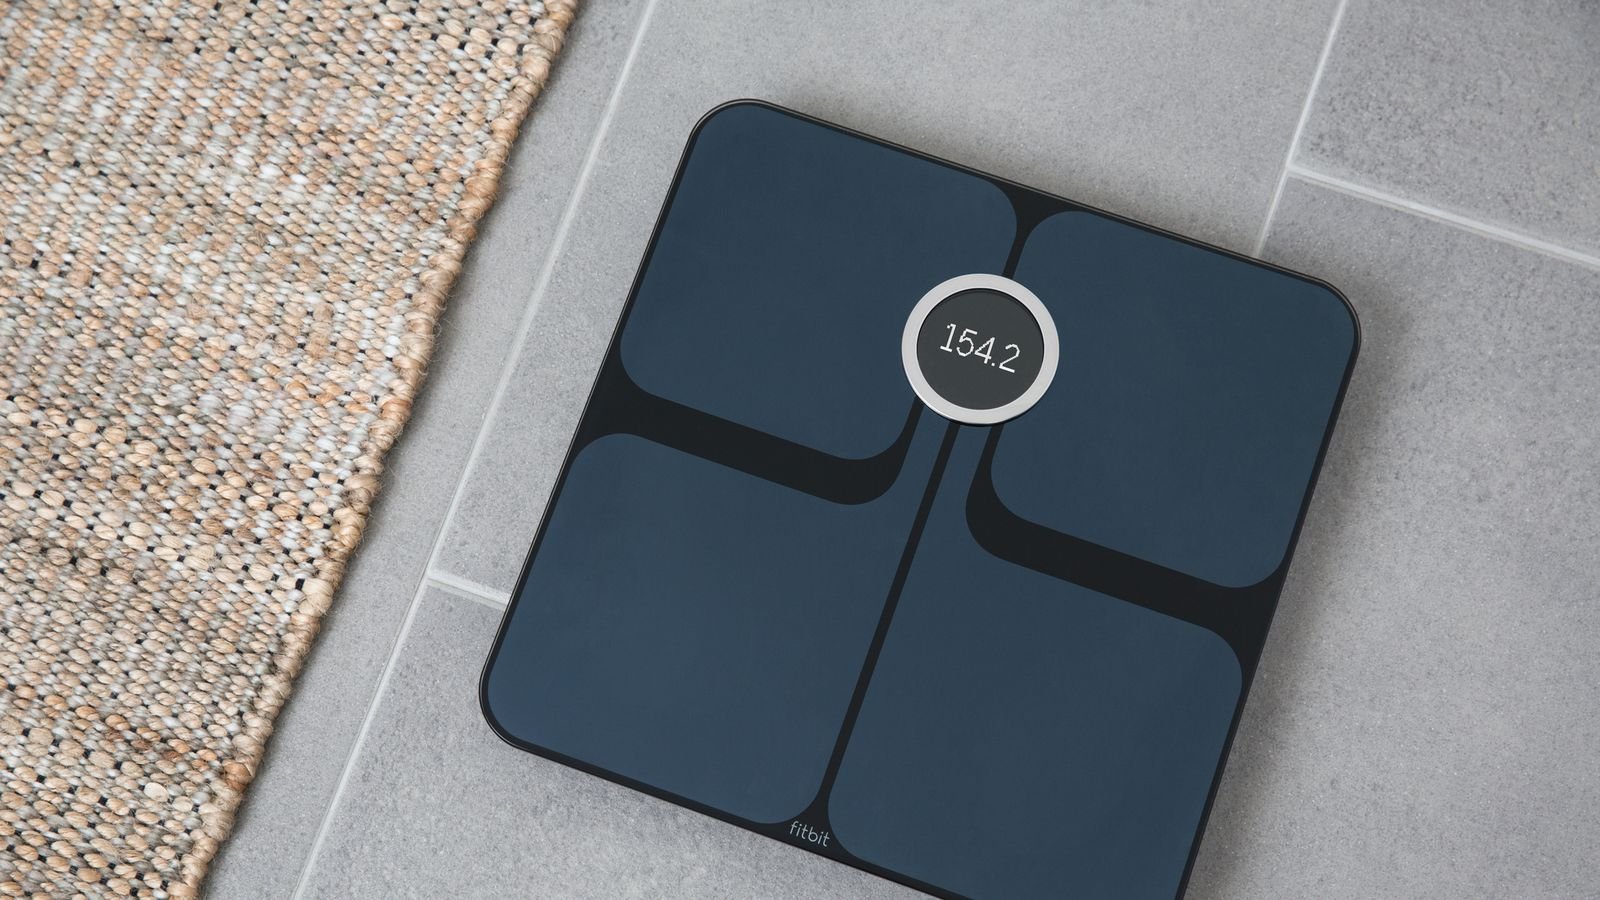 The Aria 2 updates Fitbit's smart scale with a new design and improved accuracy